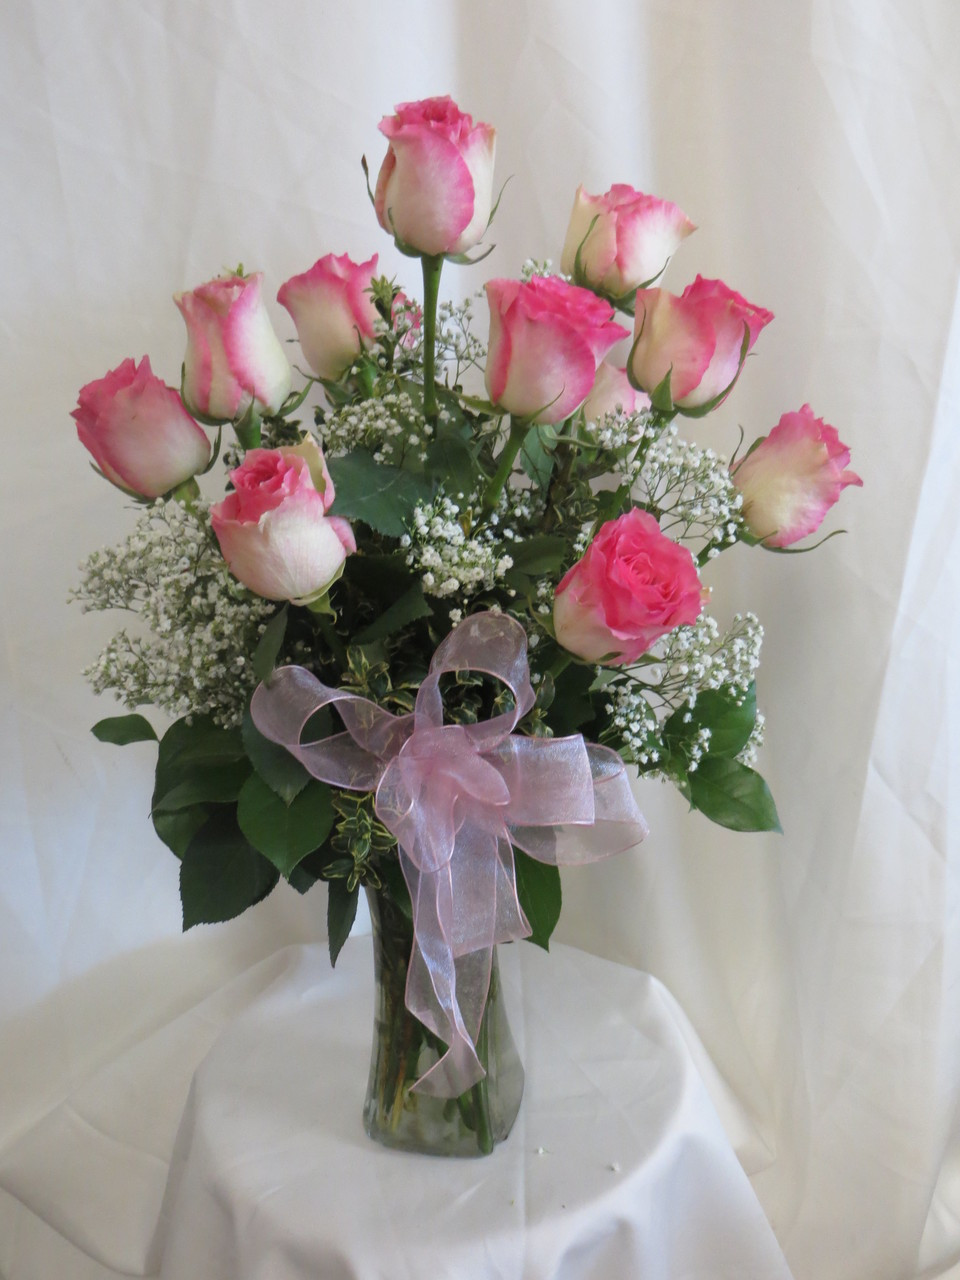 Beautiful vase of pink and white roses for delivery by flower delicious dozen pink long stemmed roses by enchanted florist deer park tx one dozen pretty reviewsmspy